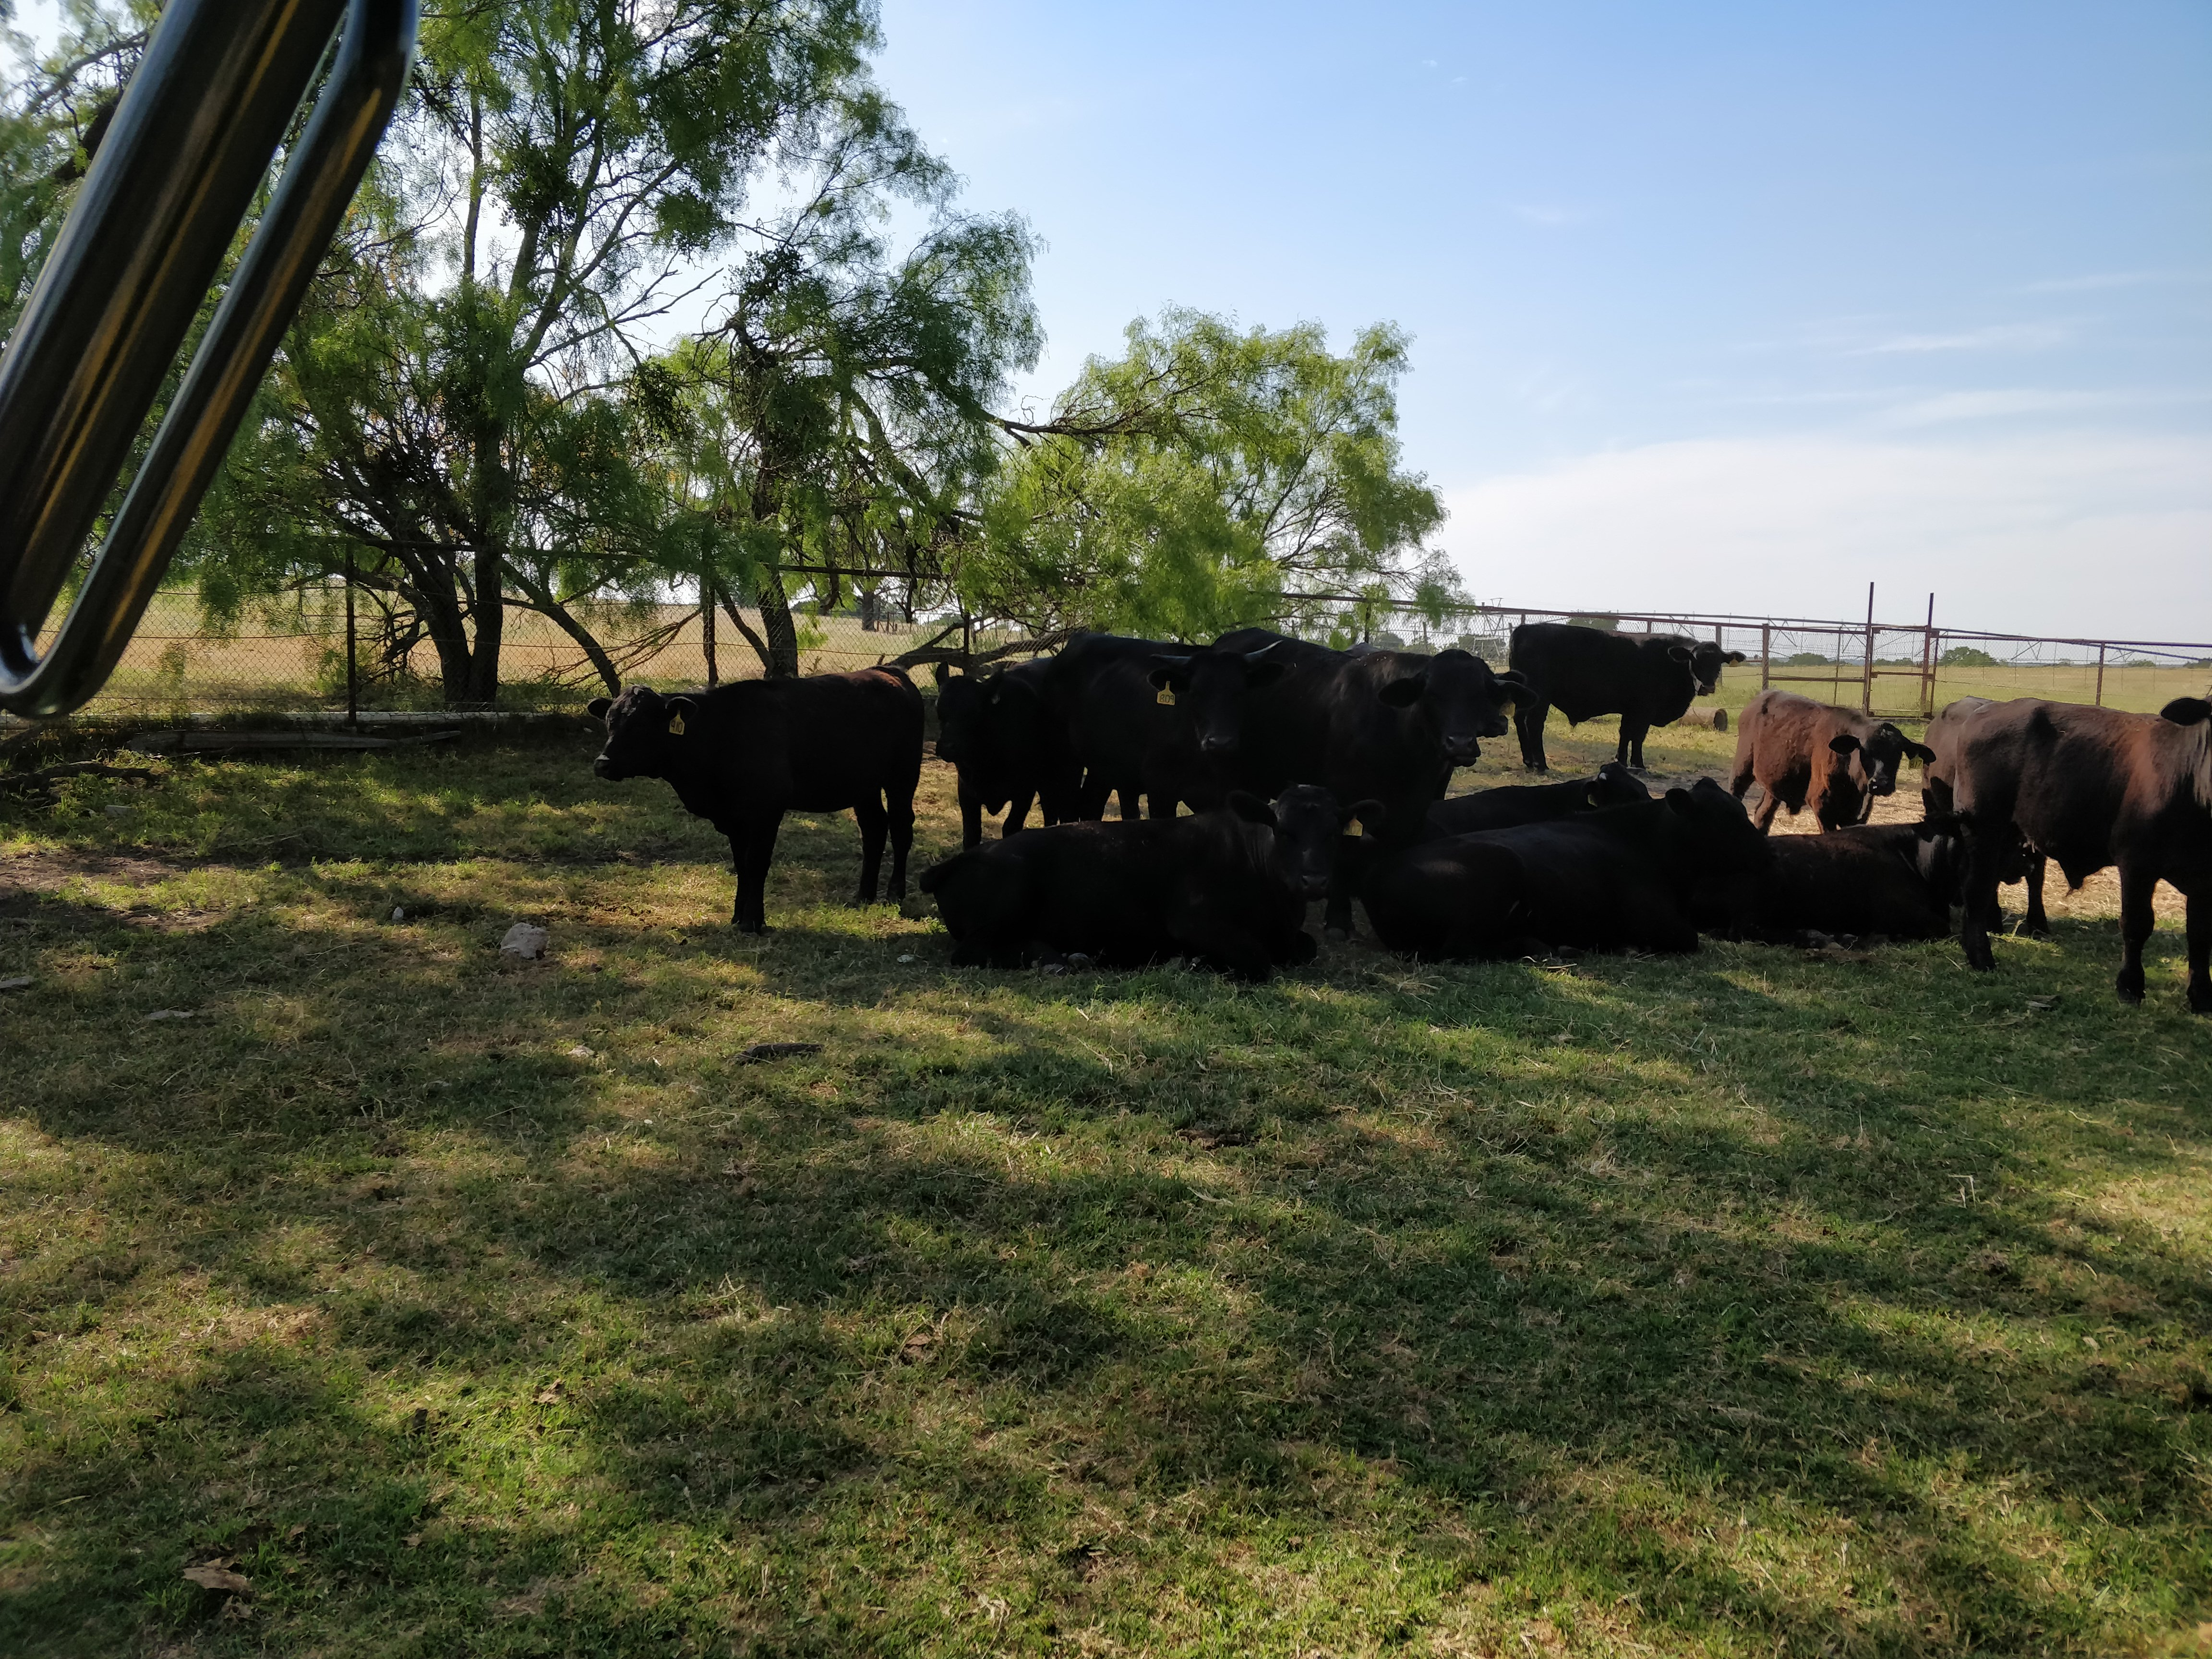 herd resting in shade (view 2)